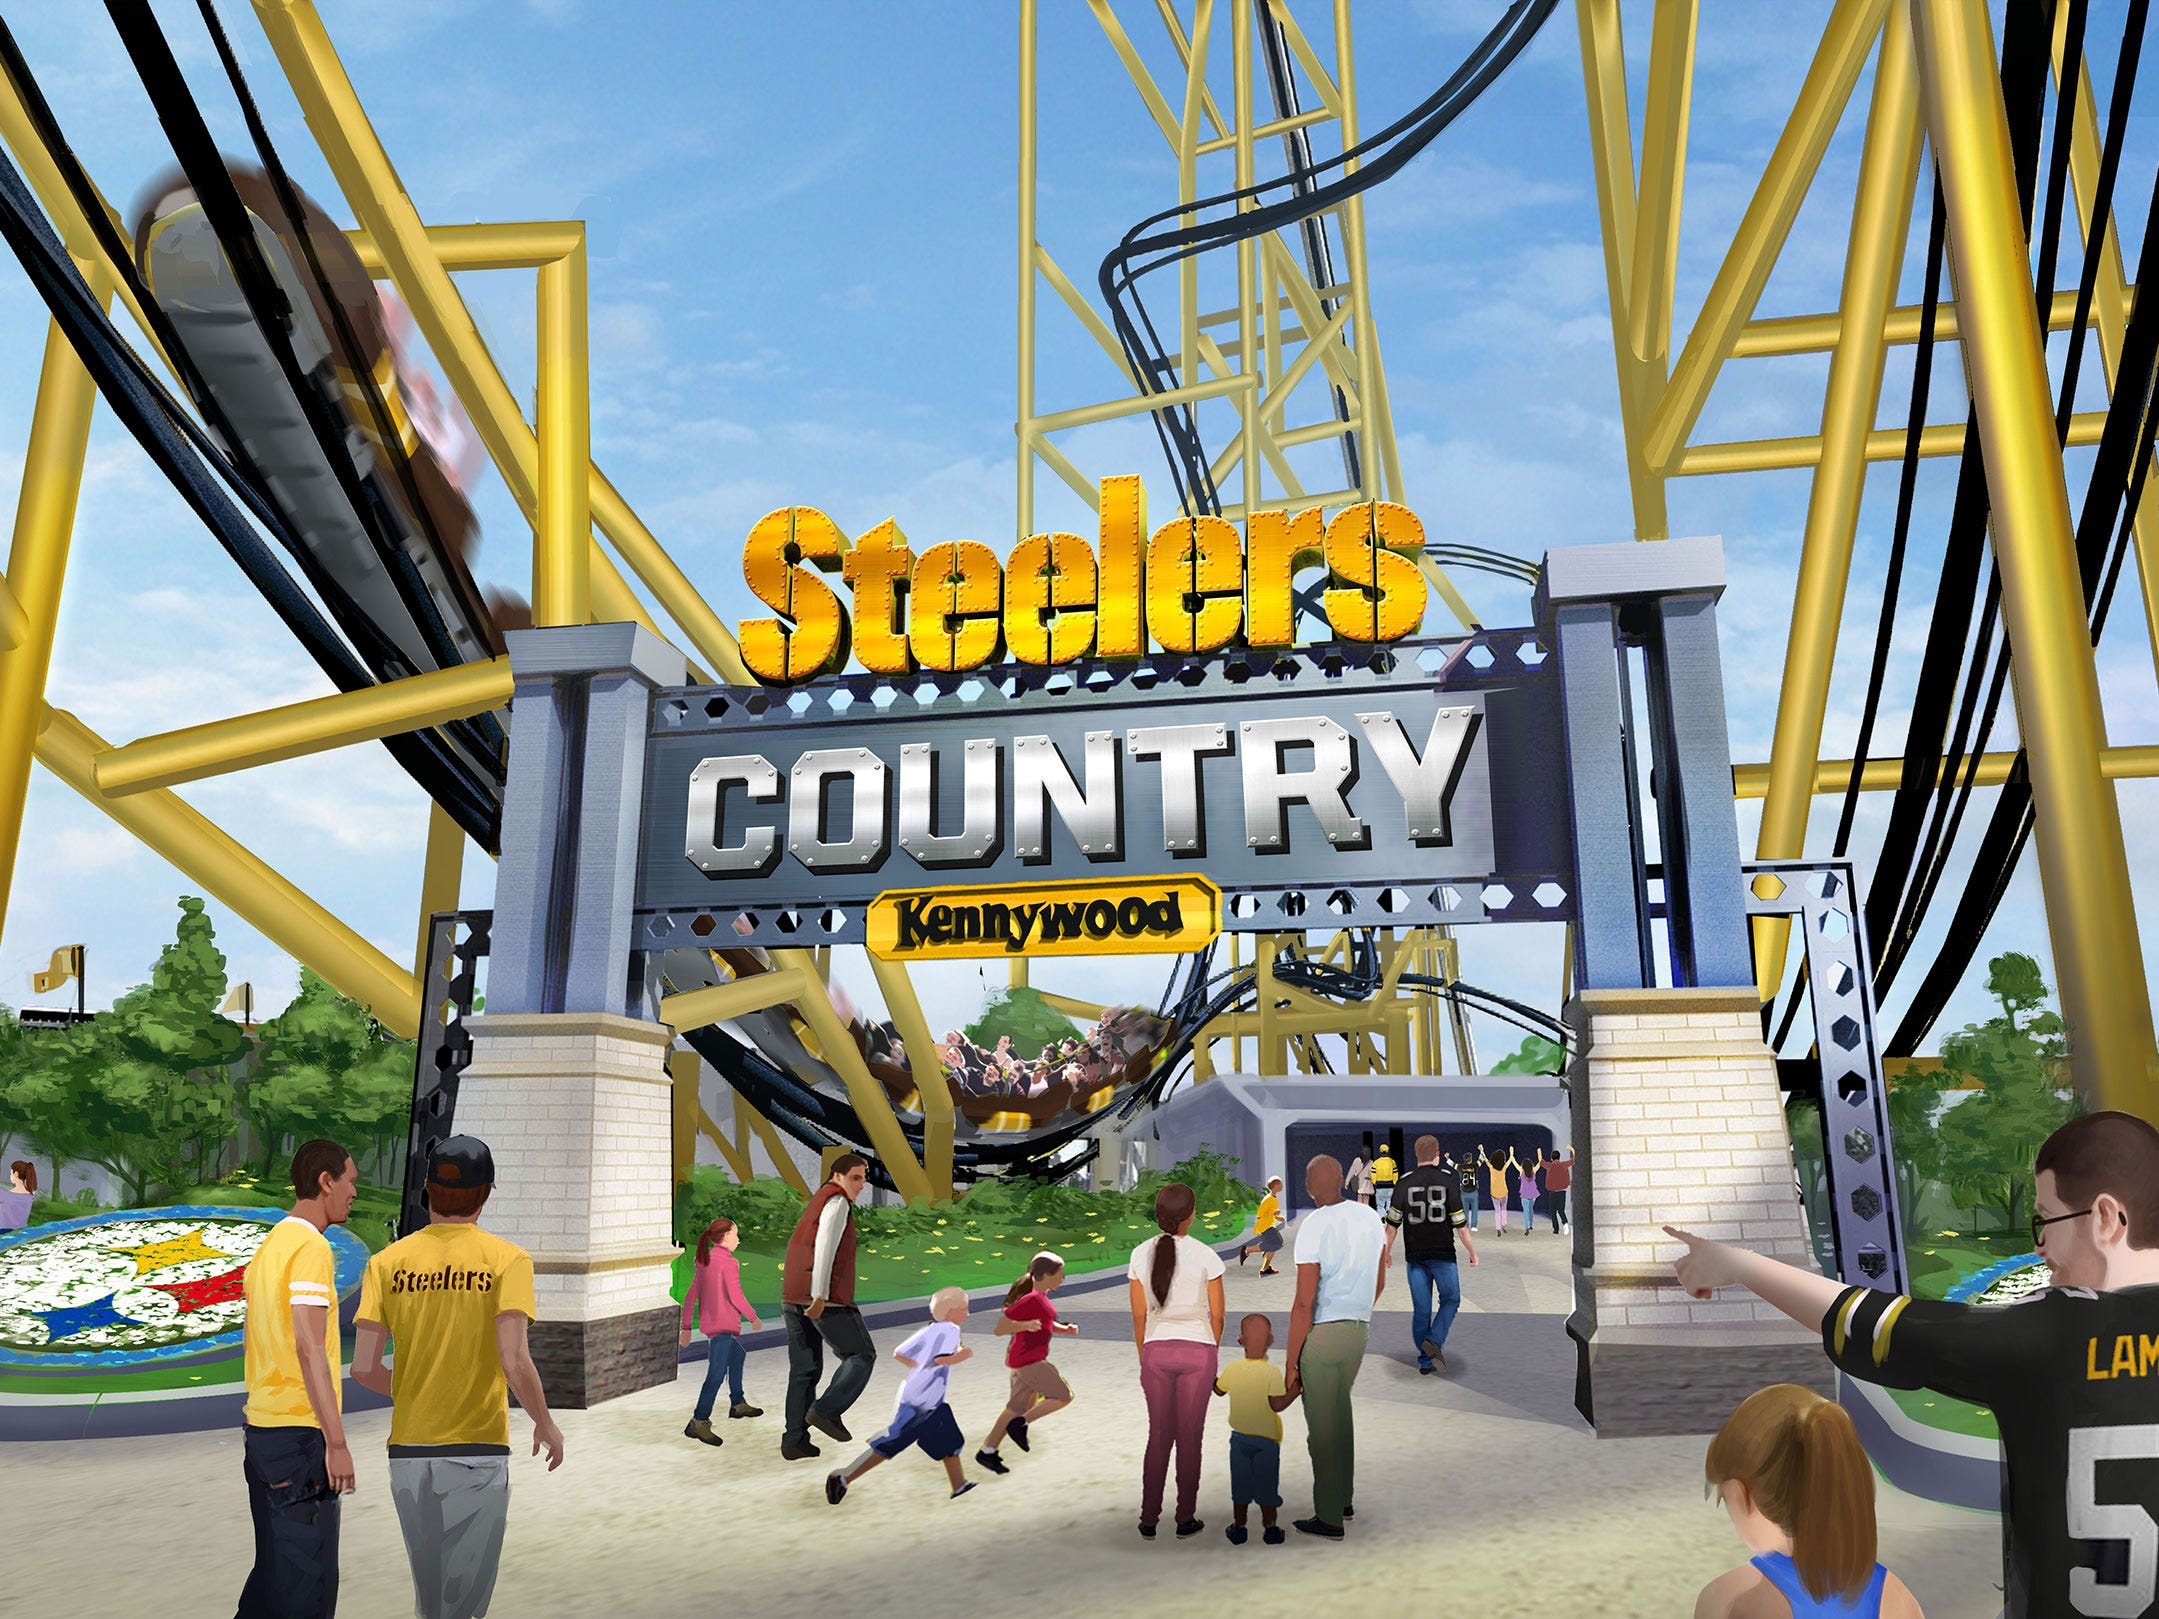 Pittsburgh Steelers-inspired roller coaster to open at Kennywood